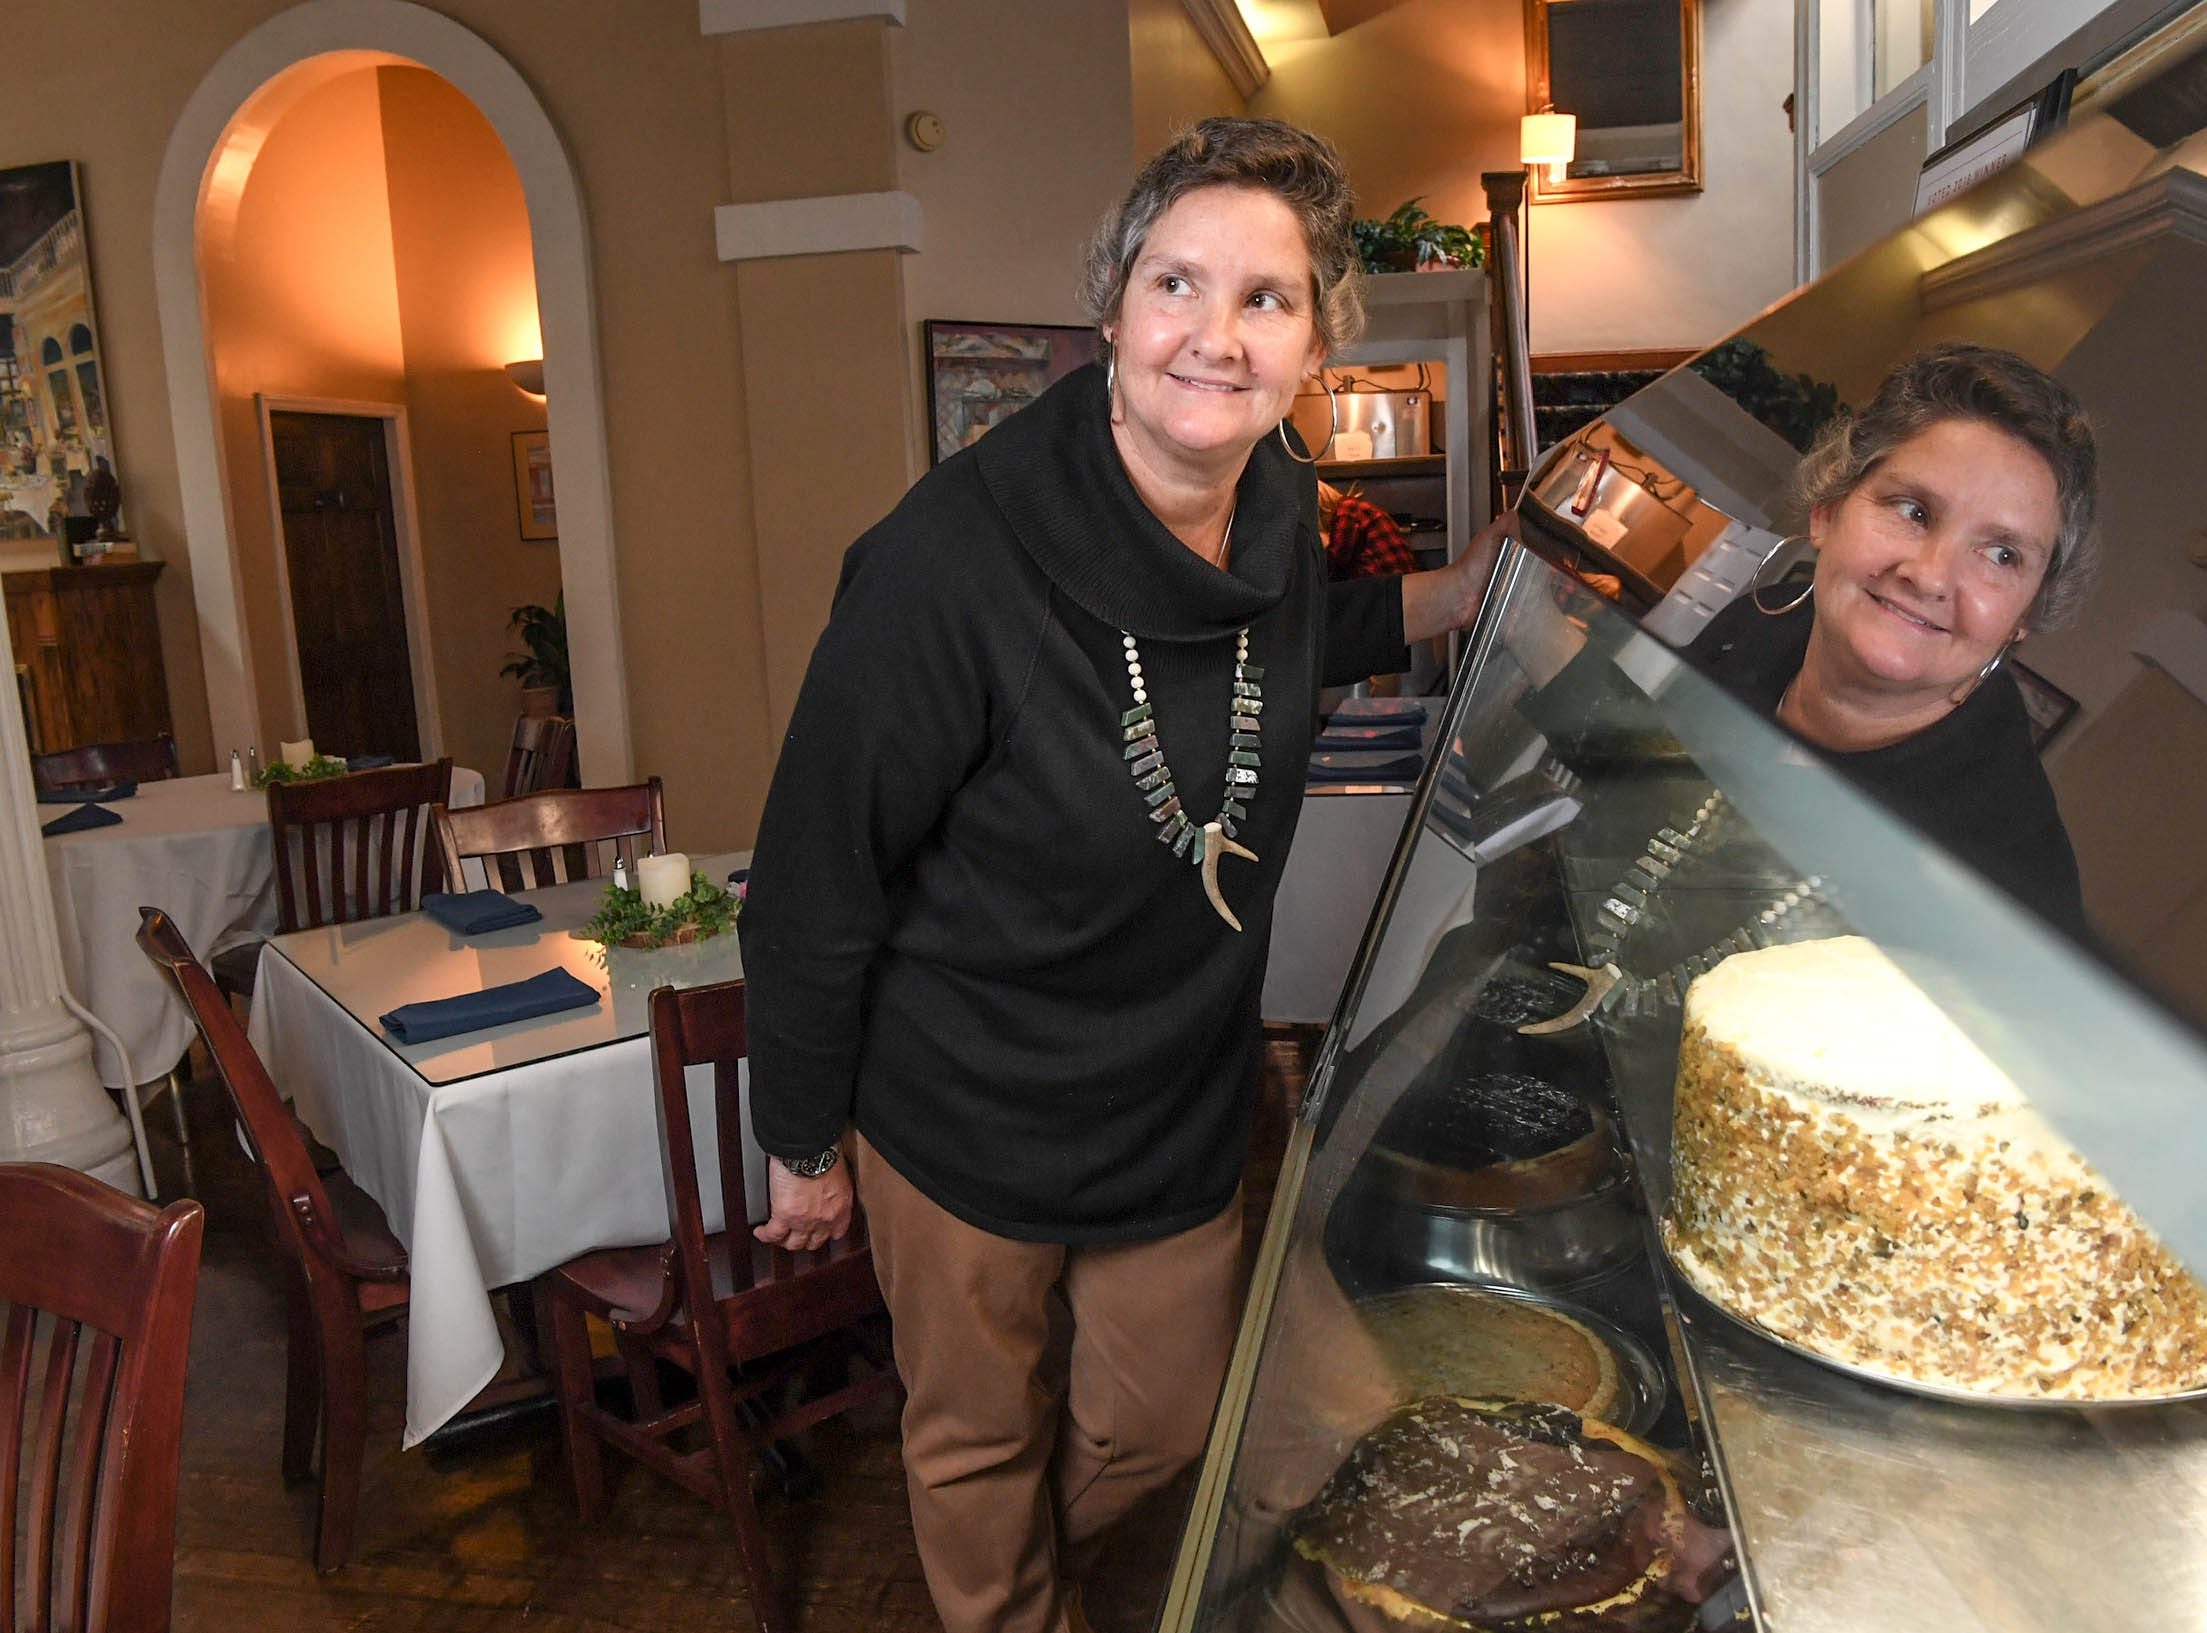 Sabra Nickas, co-owner of Sullivan's Metropolitan Grill, makes cheesecakes and cakes for the restaurant. The restaurant reached its 20th anniversary.